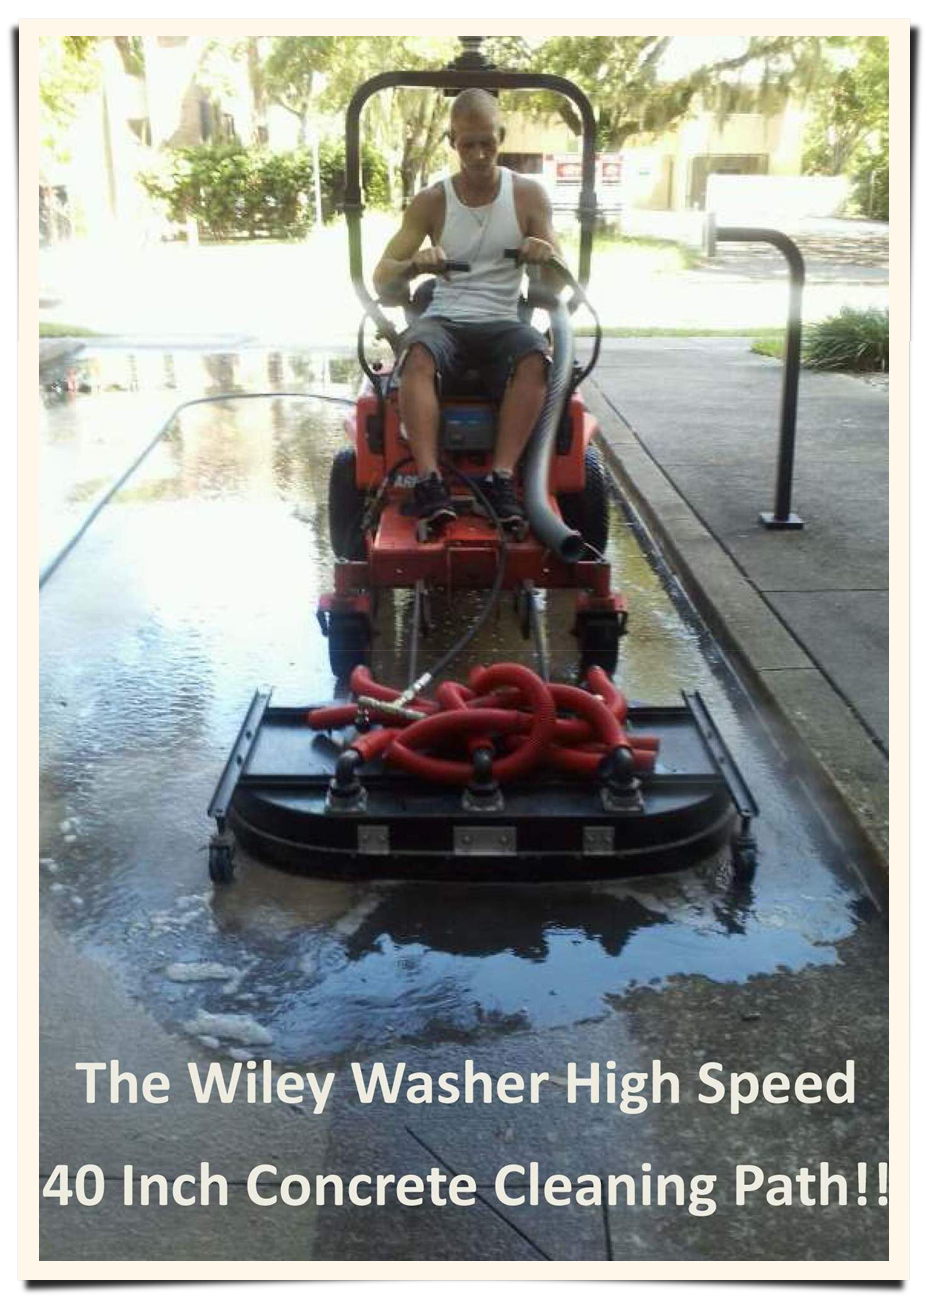 The wiley washer||||Click to enlarge